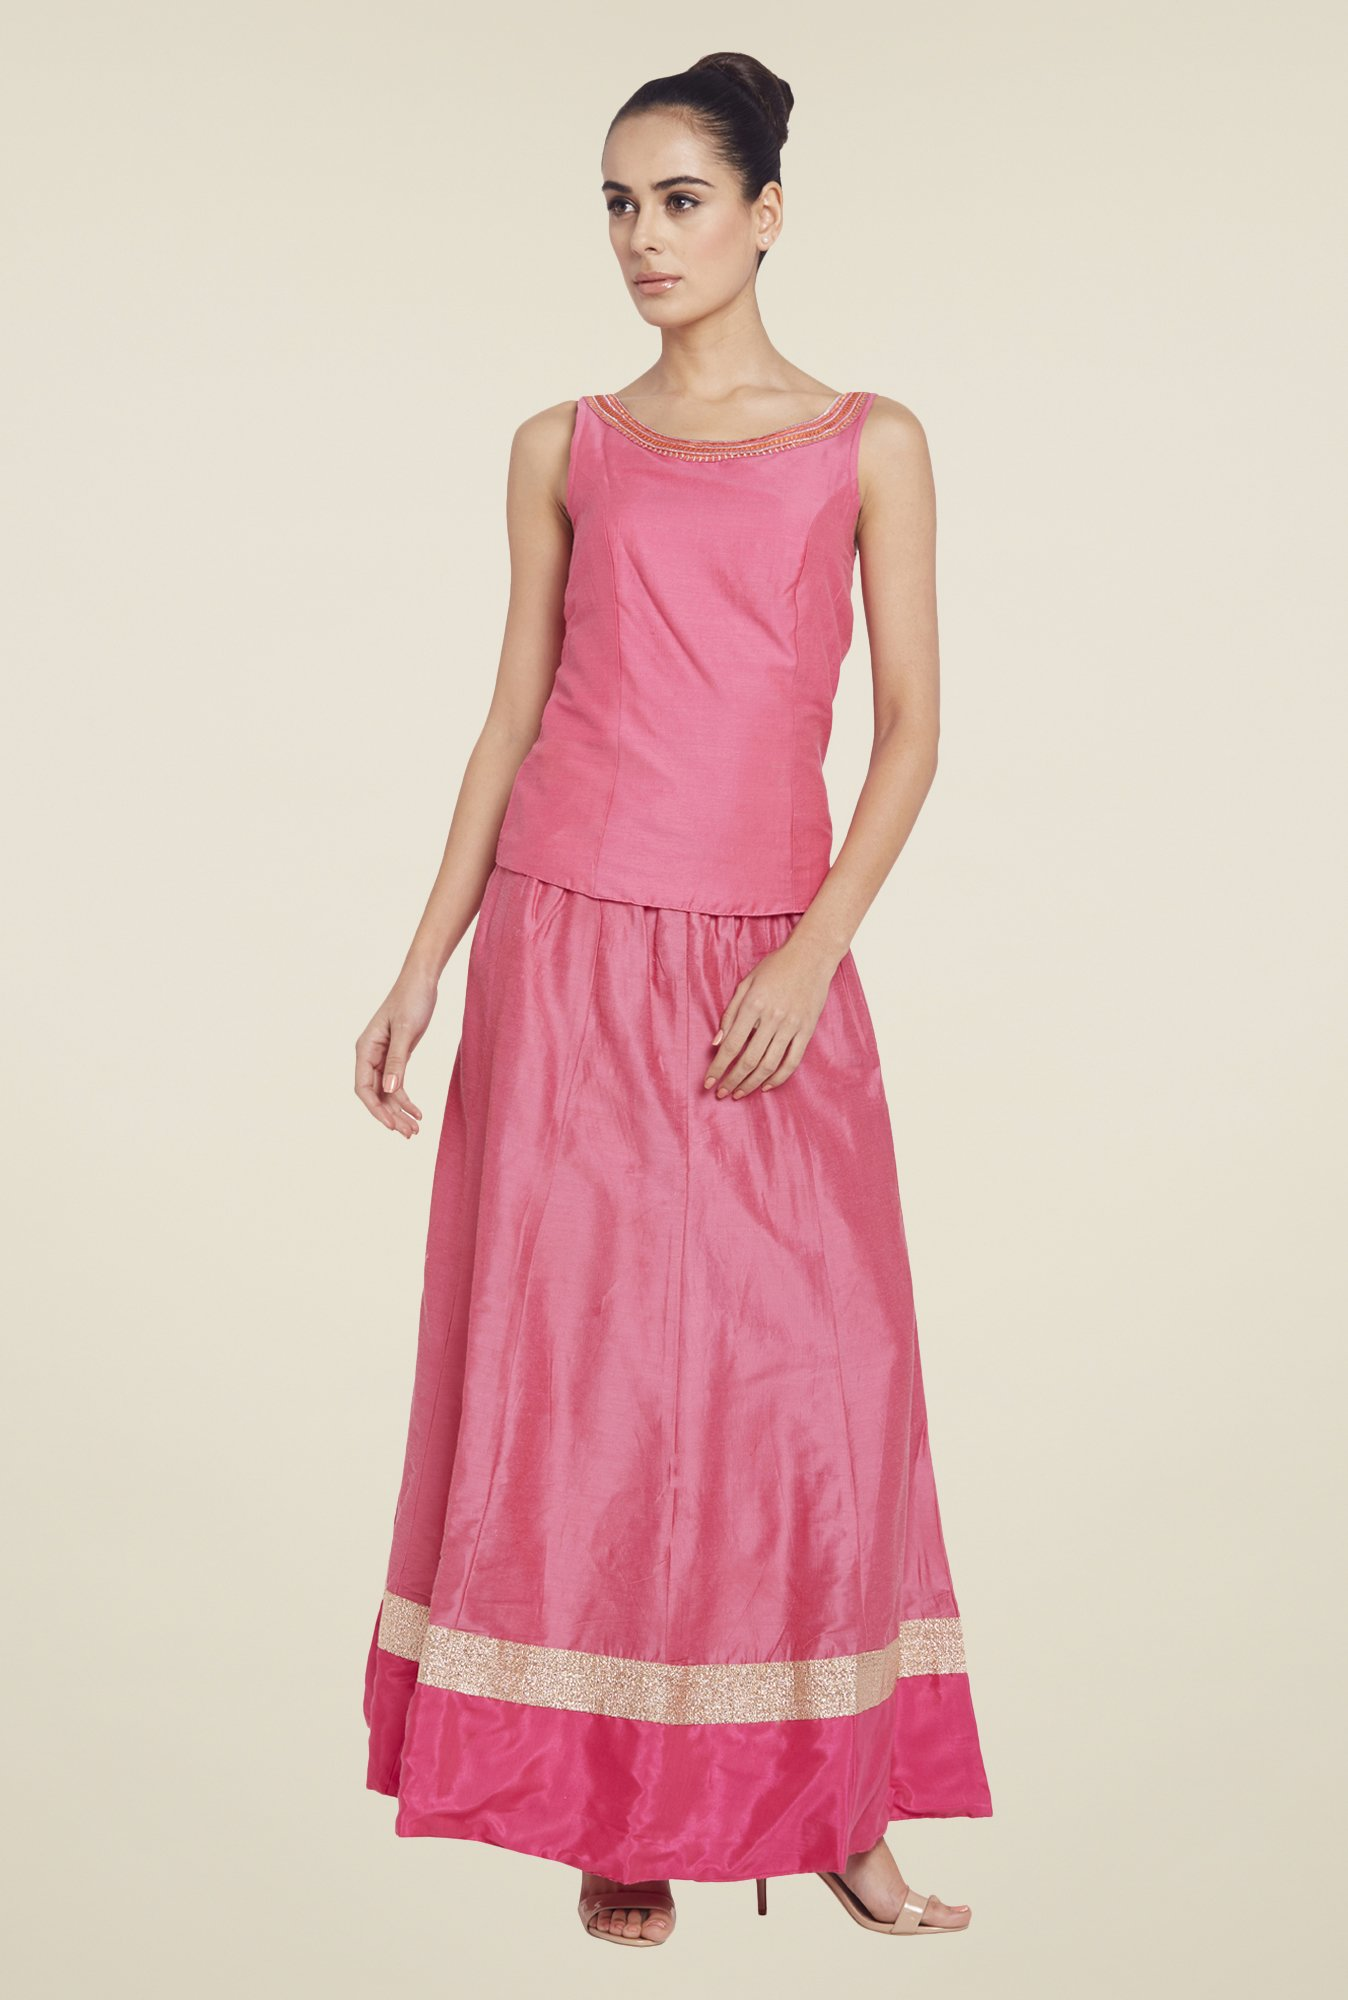 Globus Pink Solid Maxi Skirt